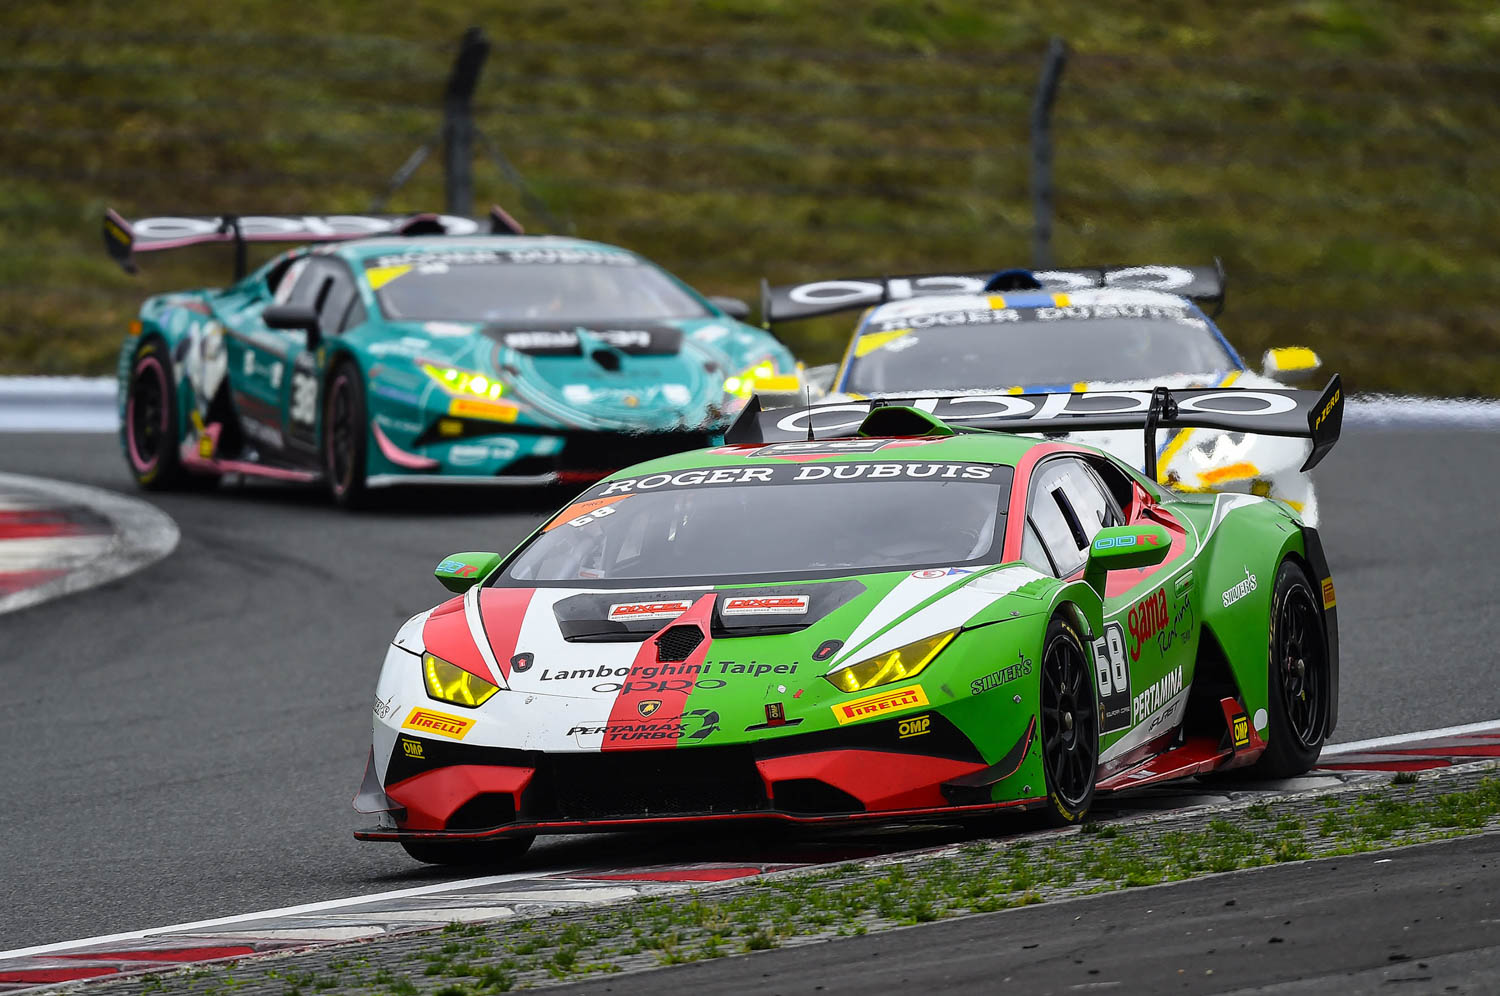 Lamborghini Super Trofeo Asia Race 5 victory in Fuji for Gama Racing duo van der Drift and Chen